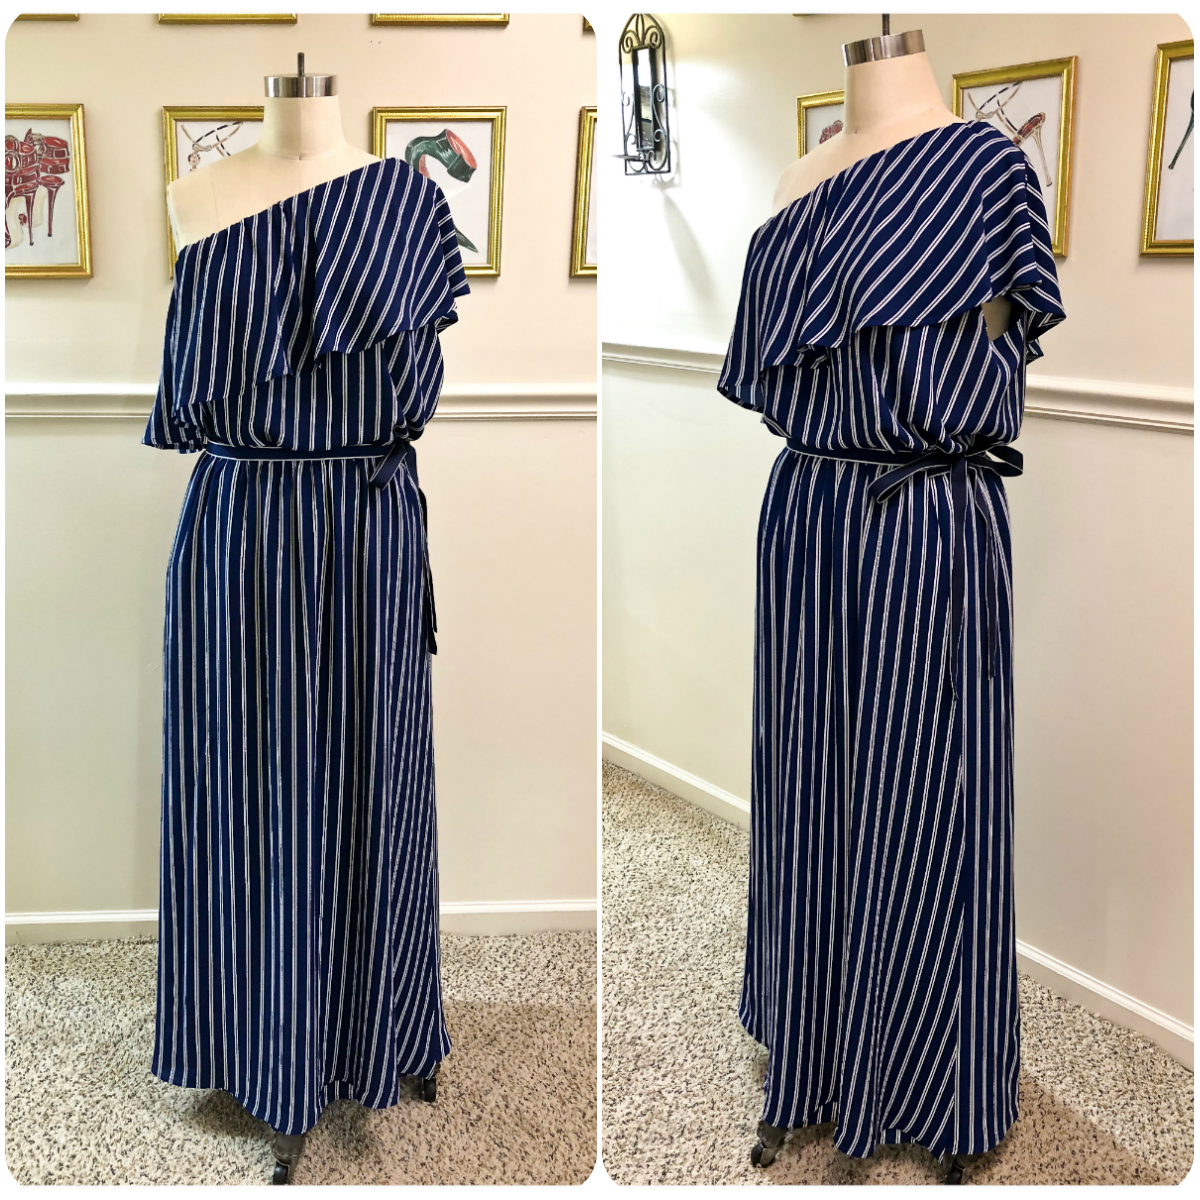 Vogue 9318 - One-Shoulder Top with Matching Maxi Wrap Skirt - Erica Bunker DIY Style!